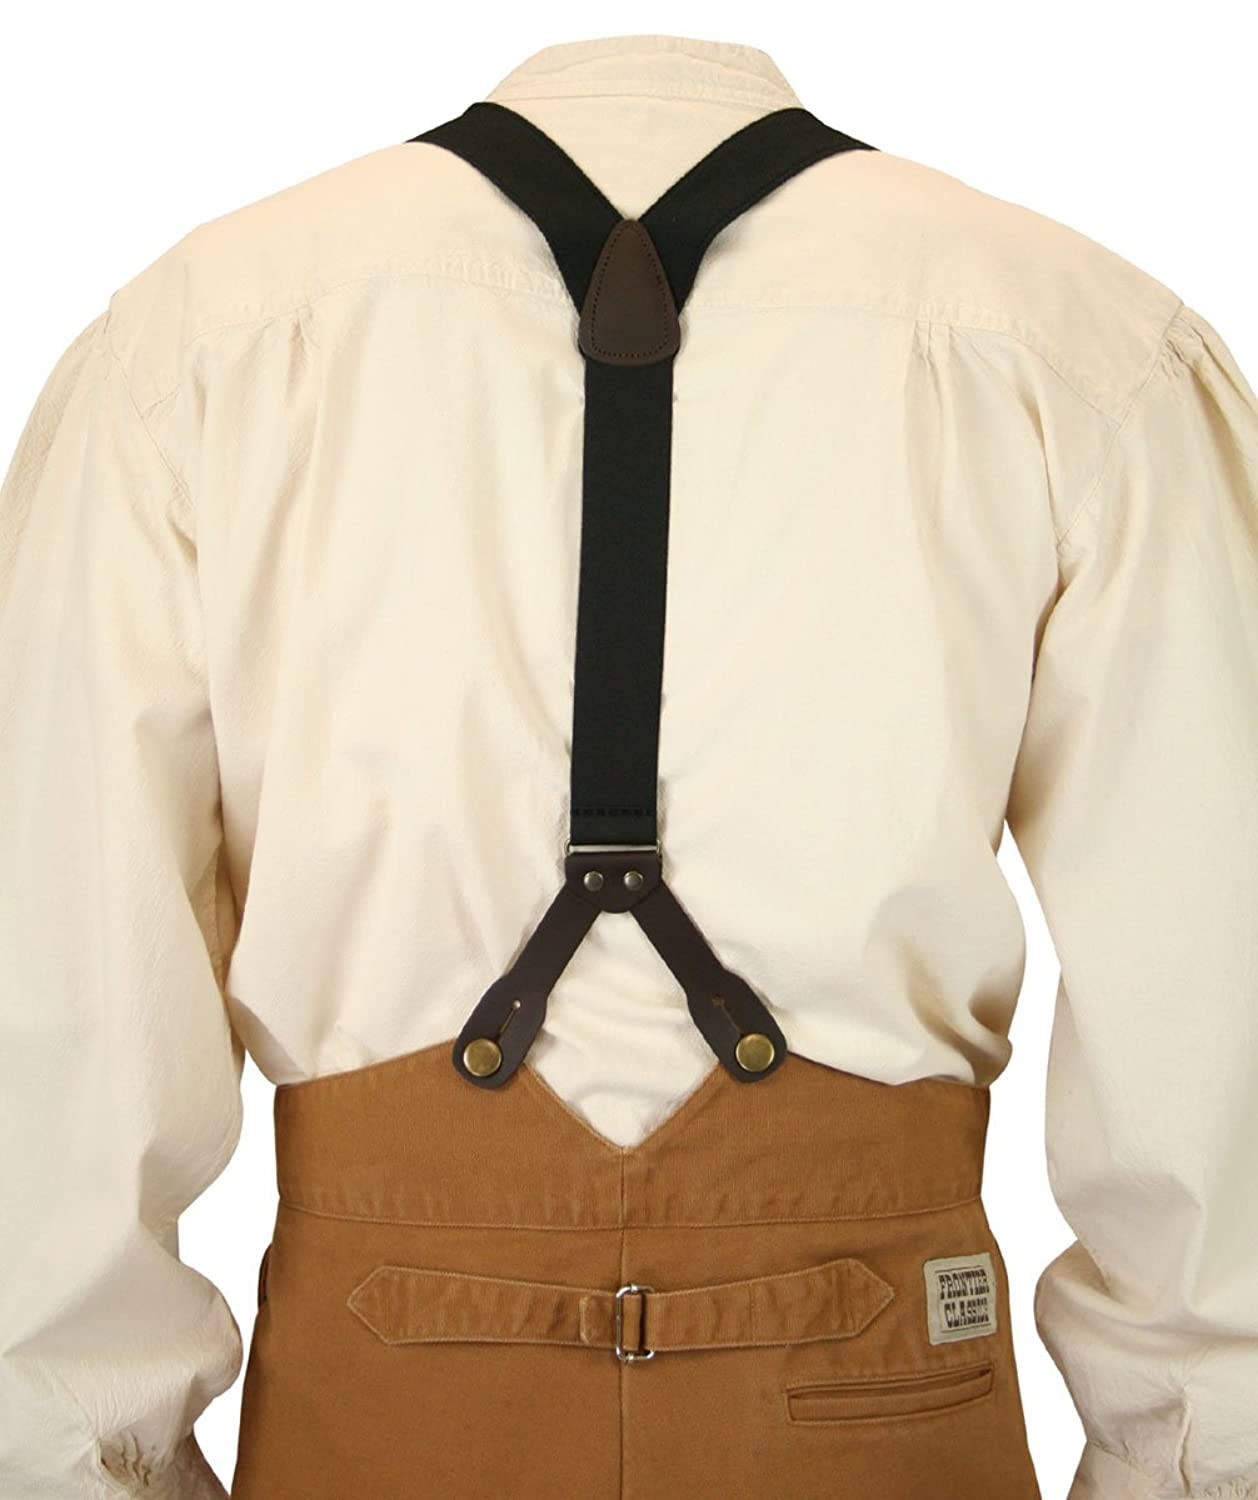 Retro Clothing for Men | Vintage Men's Fashion Historical Emporium Mens Canvas Stagecoach Y-Back Suspenders $27.95 AT vintagedancer.com